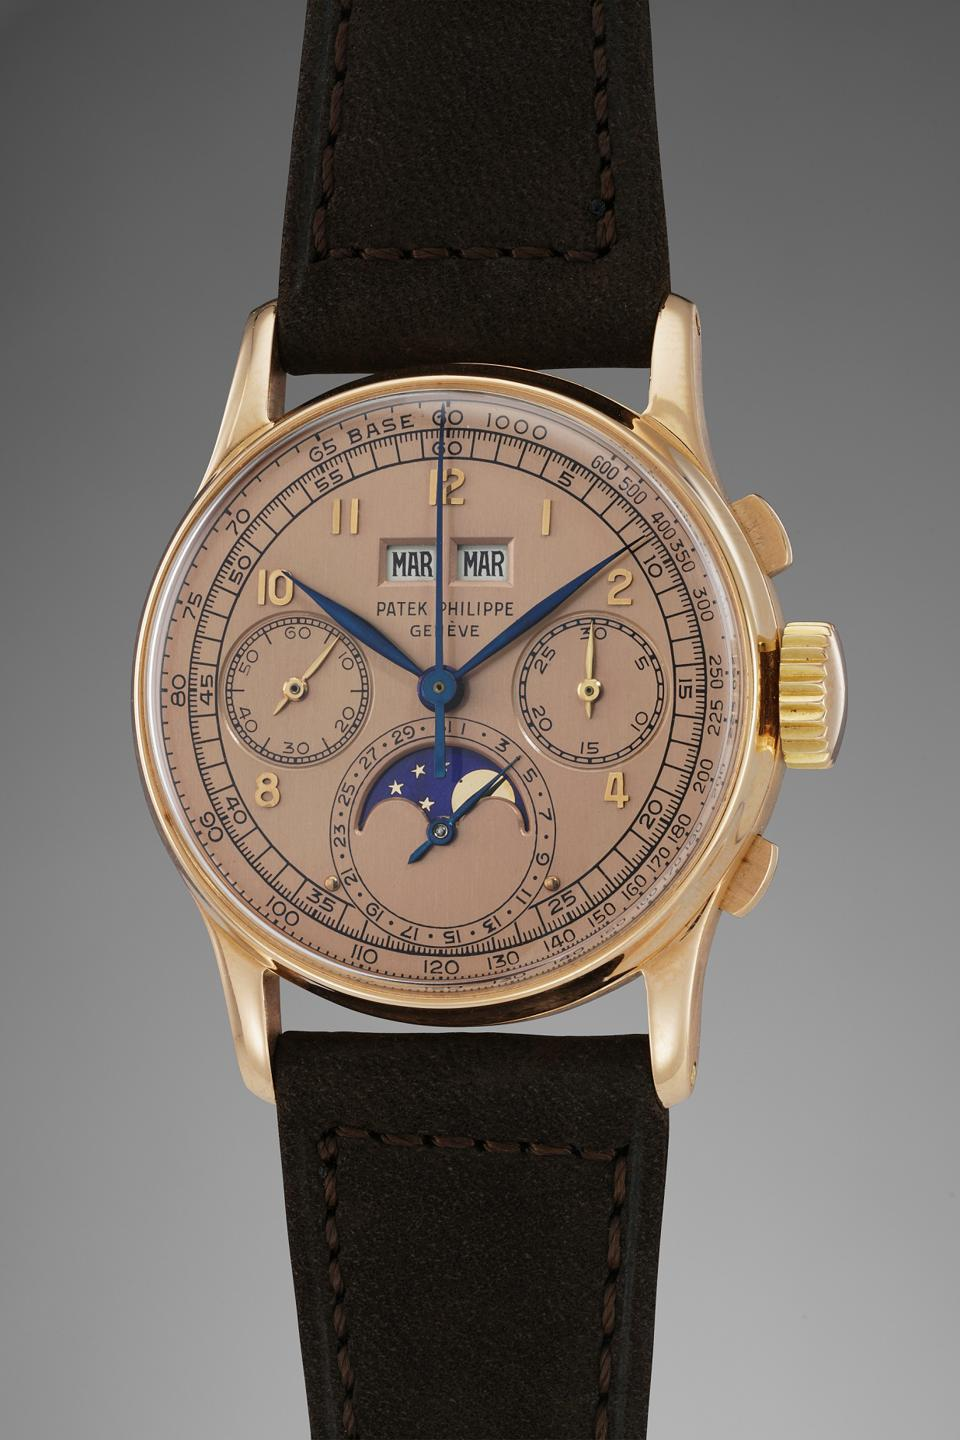 Patek Philippe 1518 perpetual calendar chronograph owned by Jean-Claude fetched $3.5 million